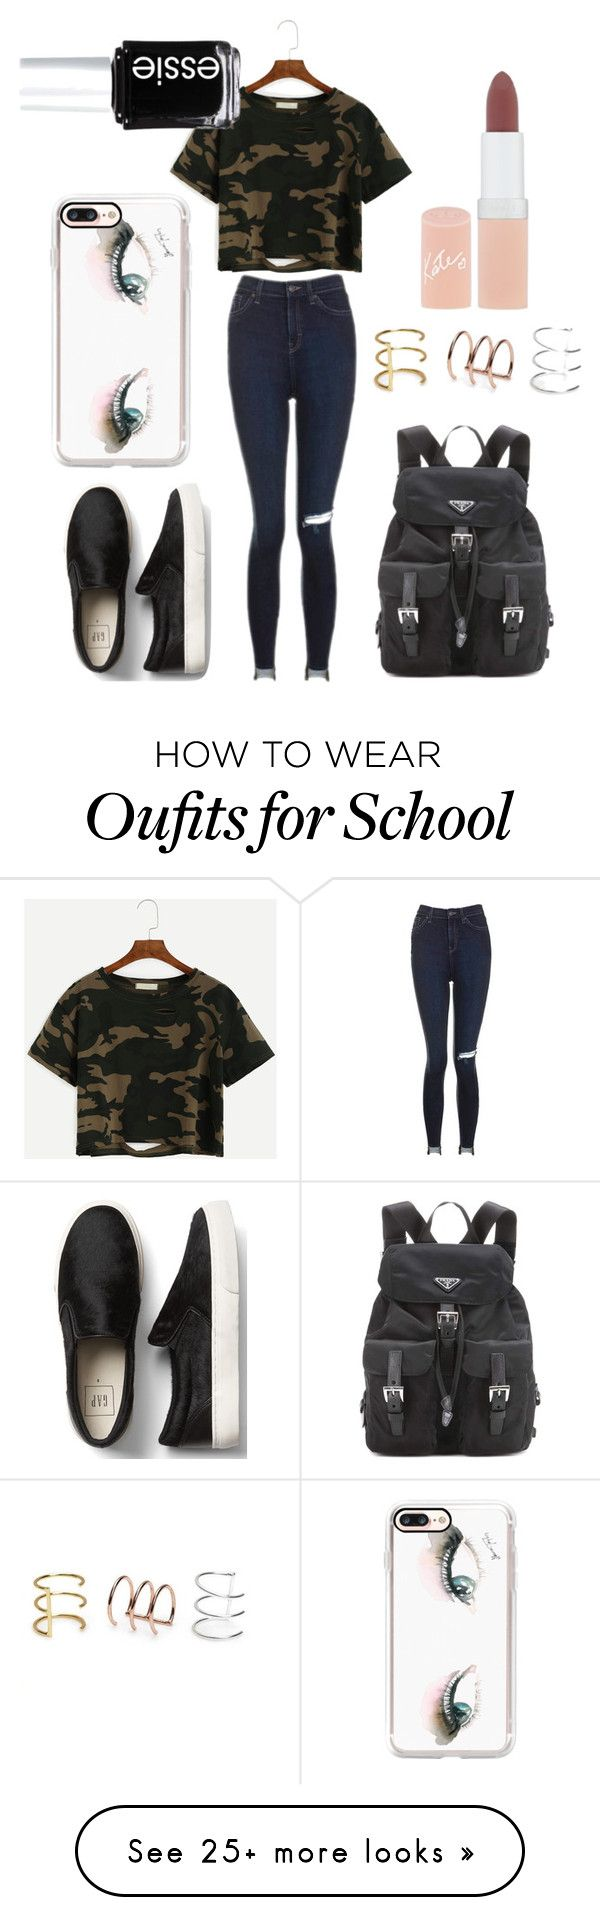 """TO SCHOOL!"" by amirah-lockett on Polyvore featuring Topshop, Casetify, Prada, Bing Bang, Rimmel and Essie"